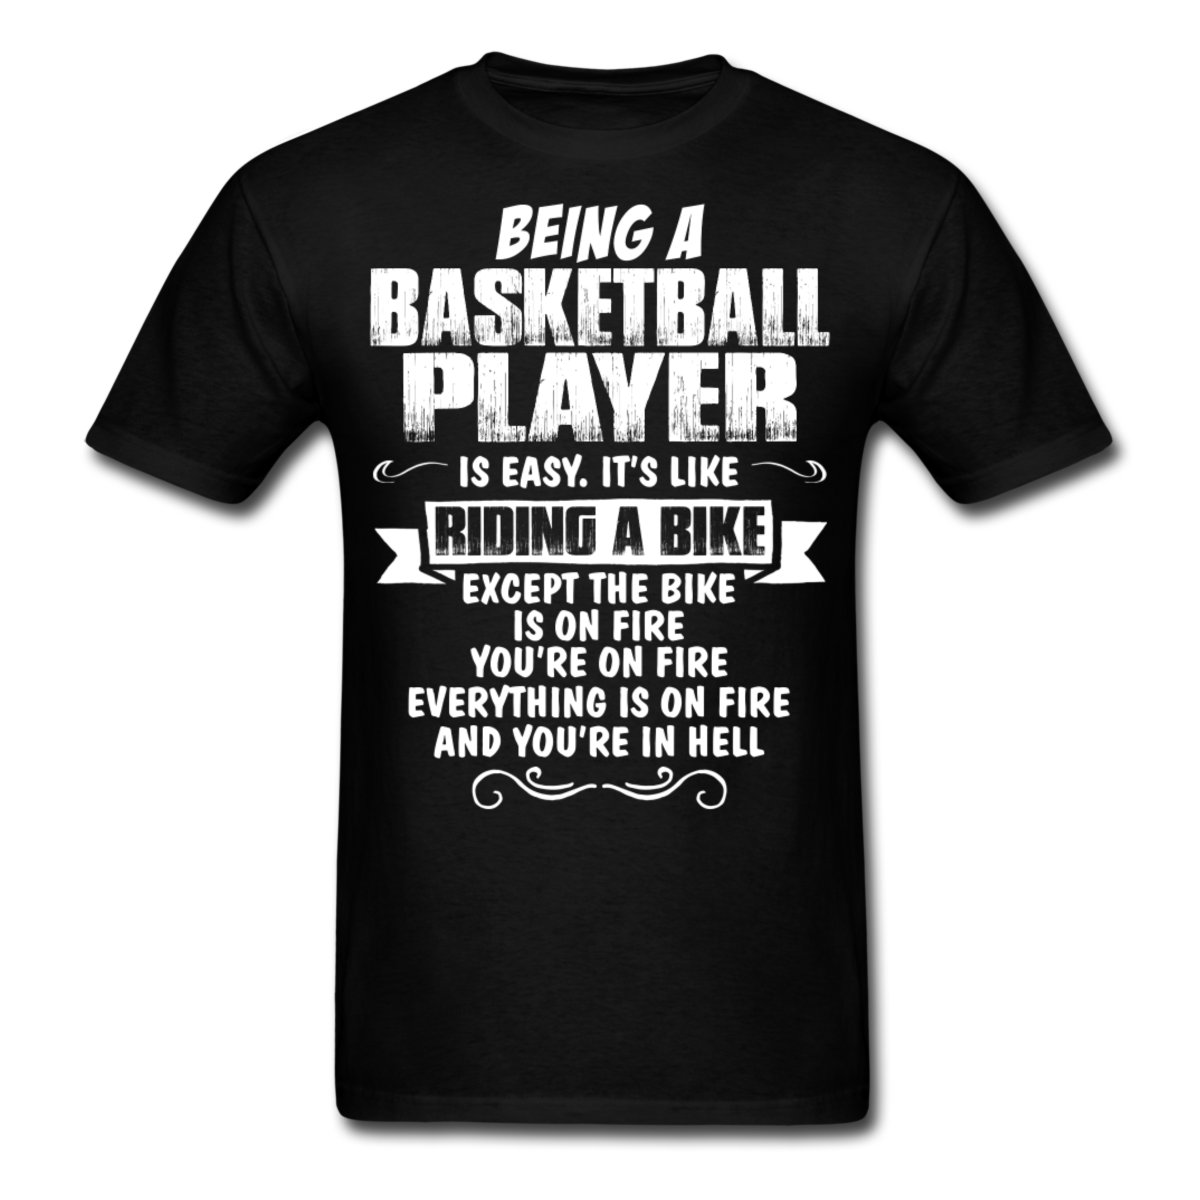 Basketball T Shirt Design Ideas vector basketball stock illustration royalty free illustrations stock clip art icon Basketballer Player Funny Quote Mens T Shirt Design T Shirts Casual Cool Short Sleeve T Shirt Free Shipping Solid Color